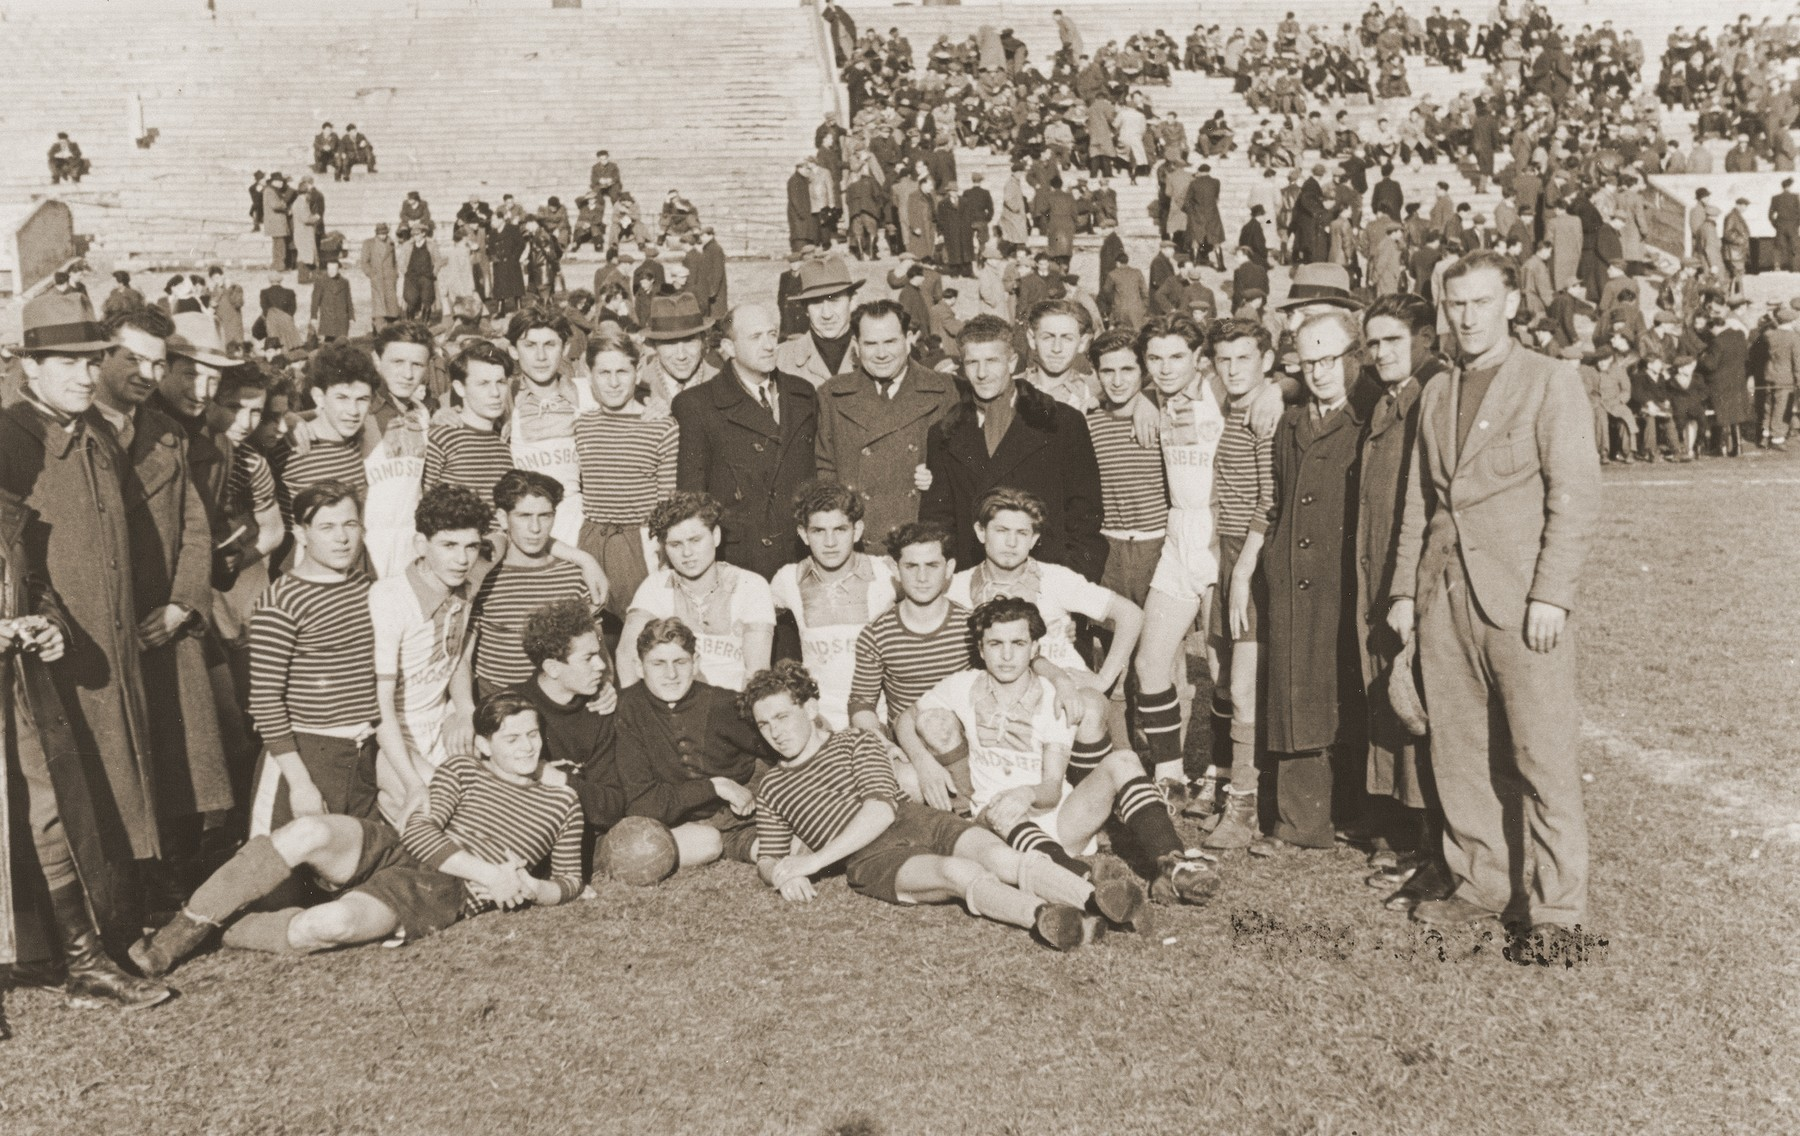 Group portrait of the soccer teams of the Landsberg and Foehrenwald displaced persons camps.